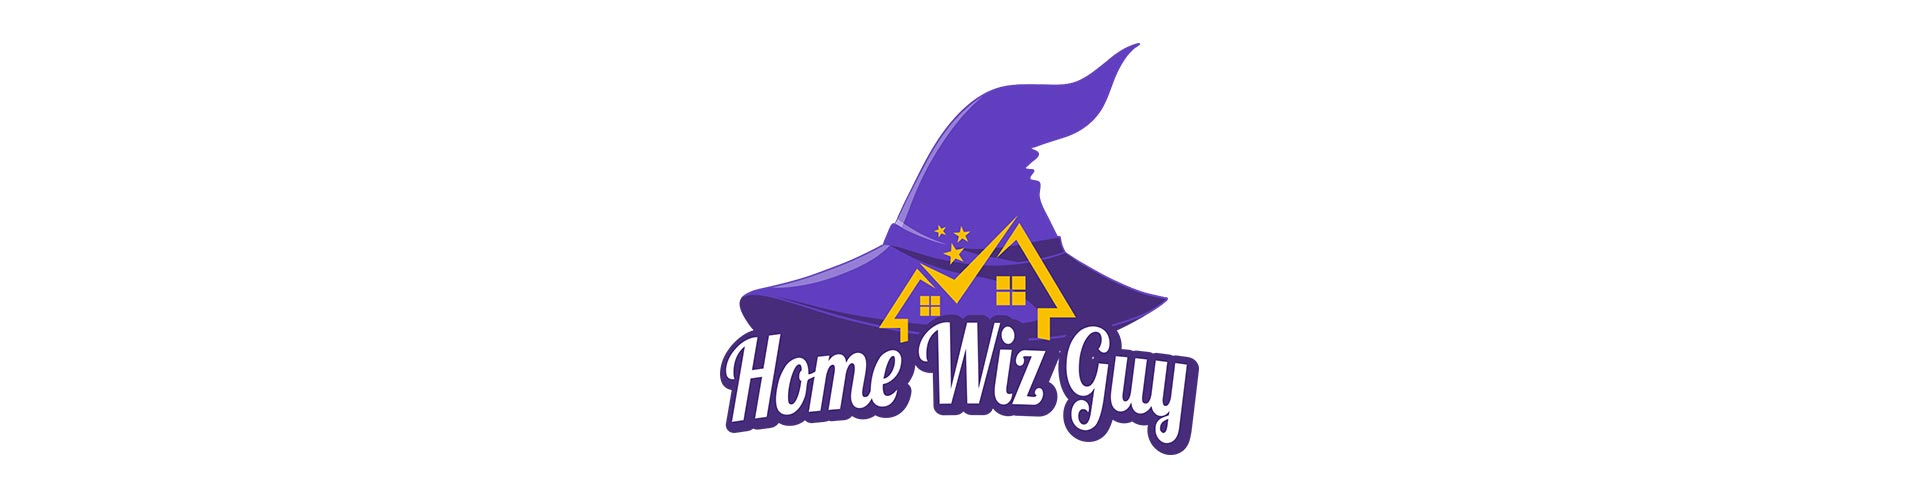 Home Wiz Guy Banner